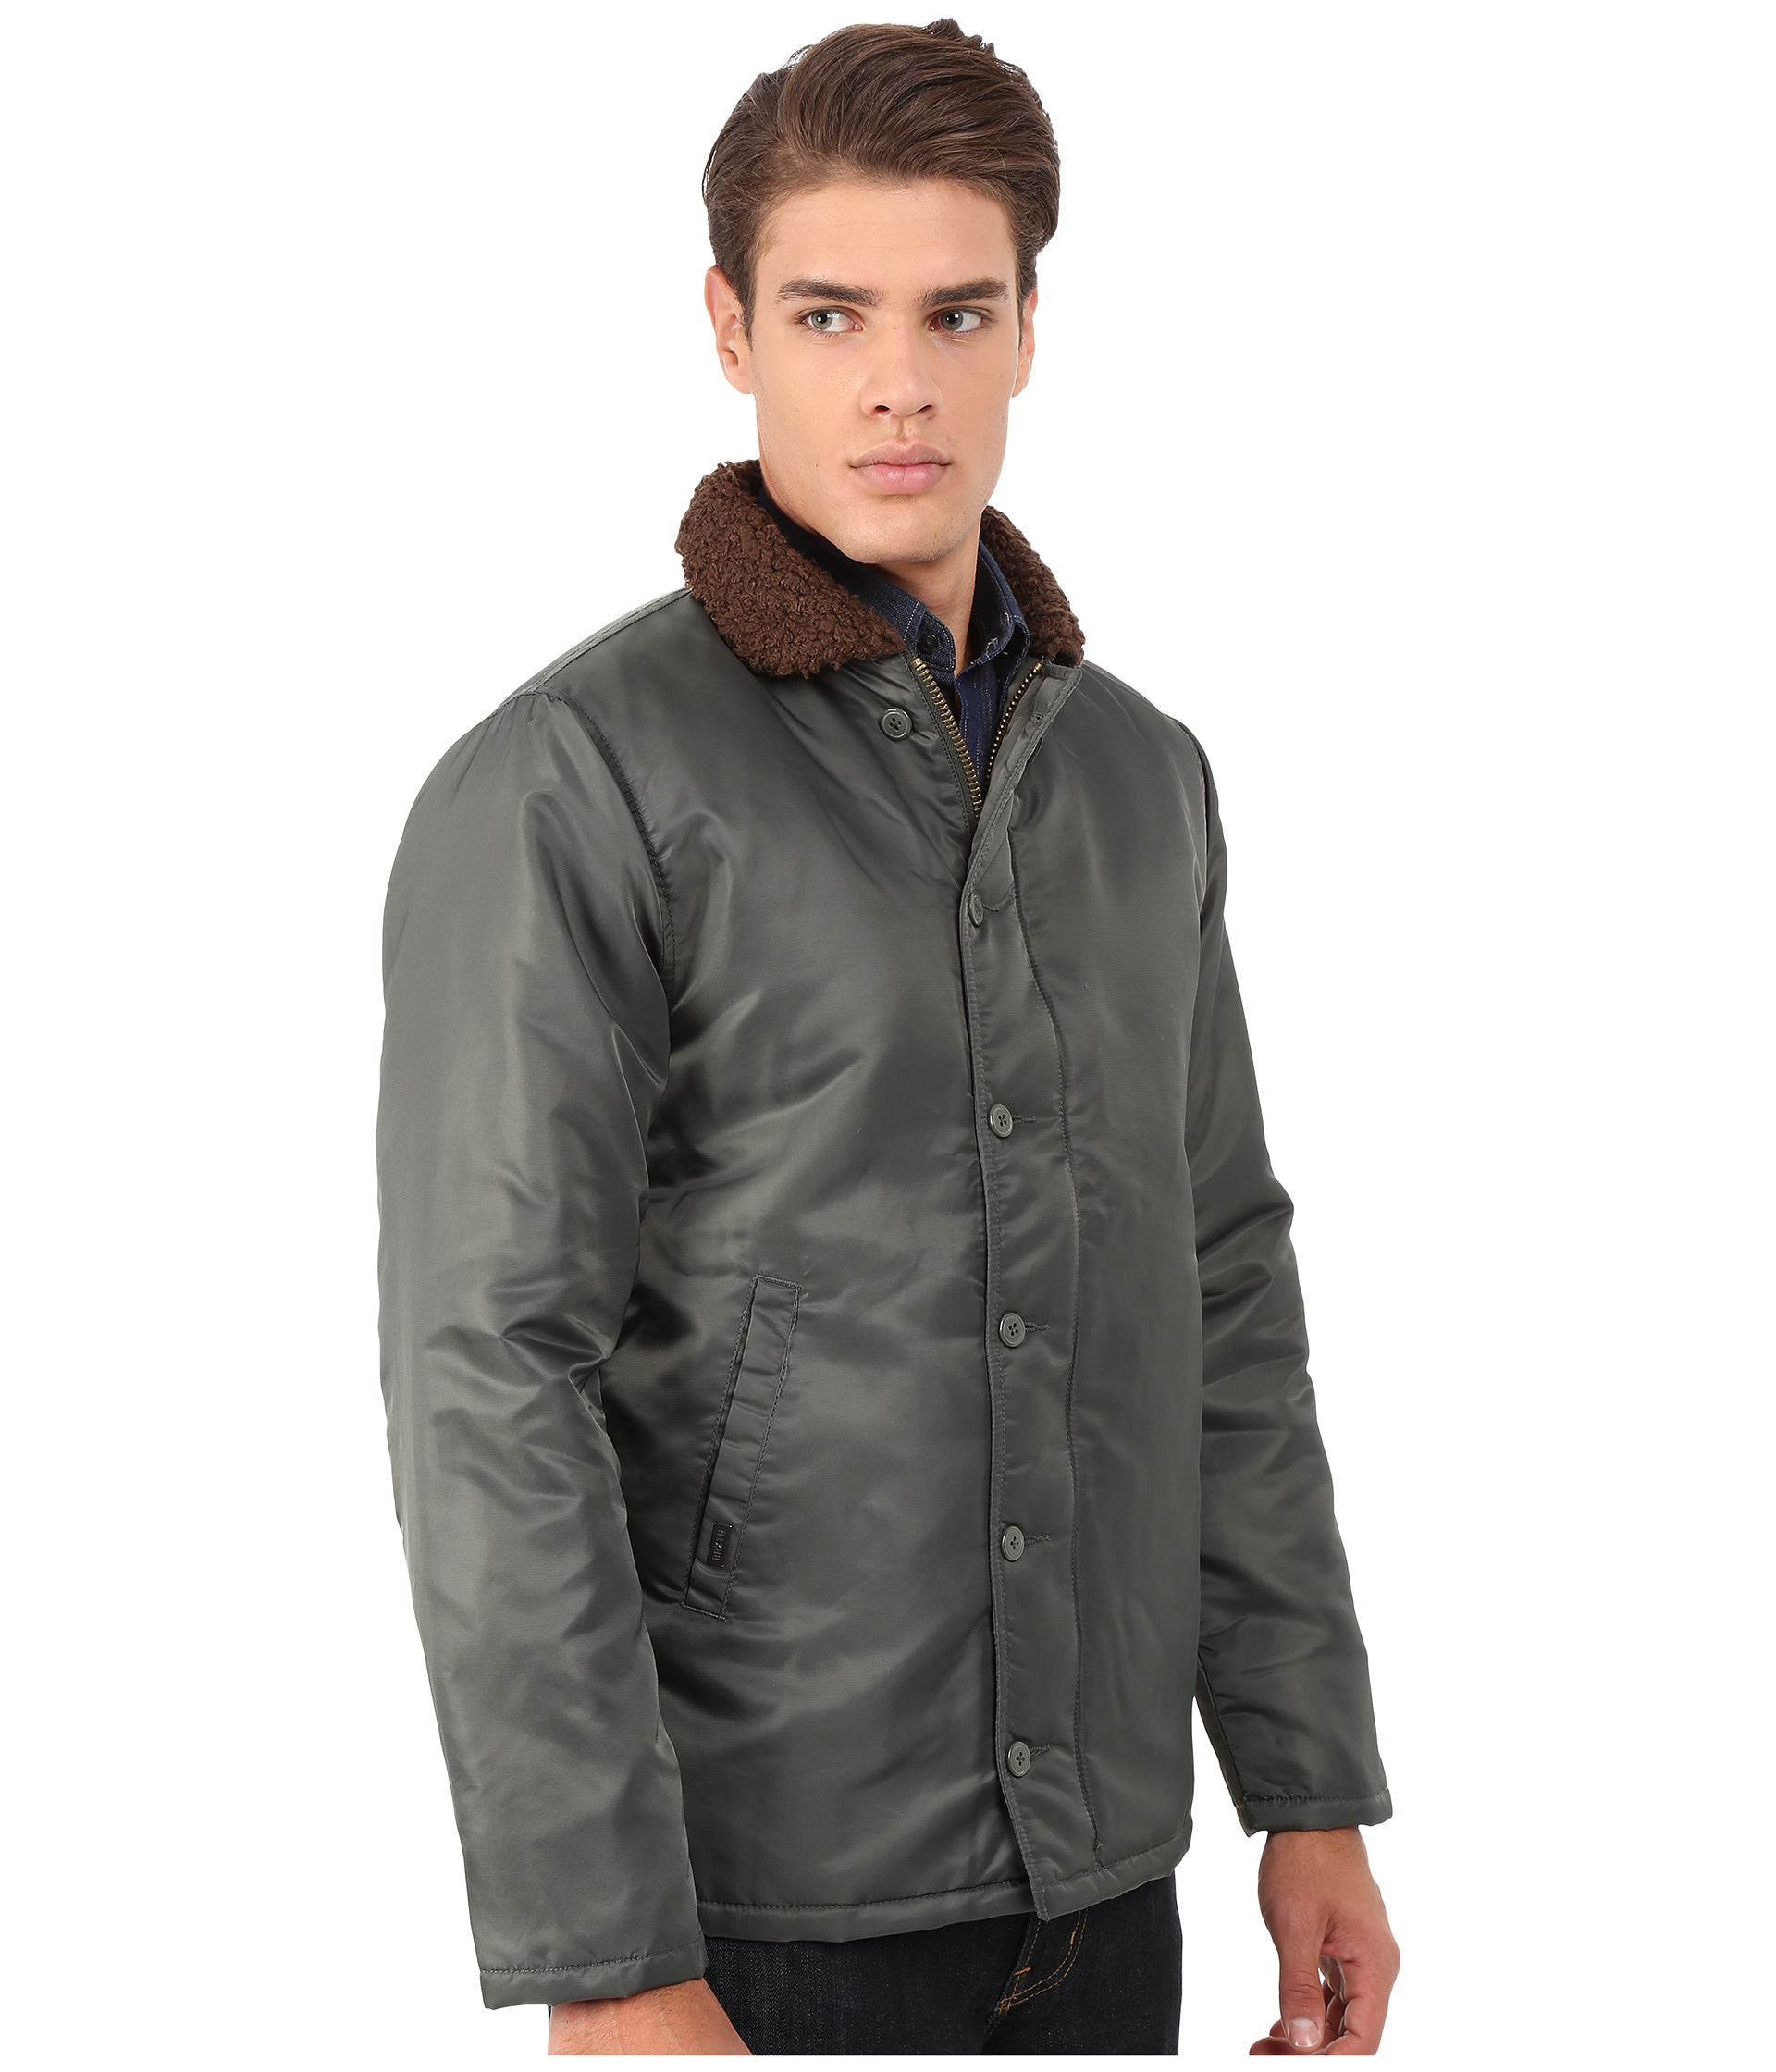 Lyst - Brixton Mast Jacket in Green for Men 0686cc7e317